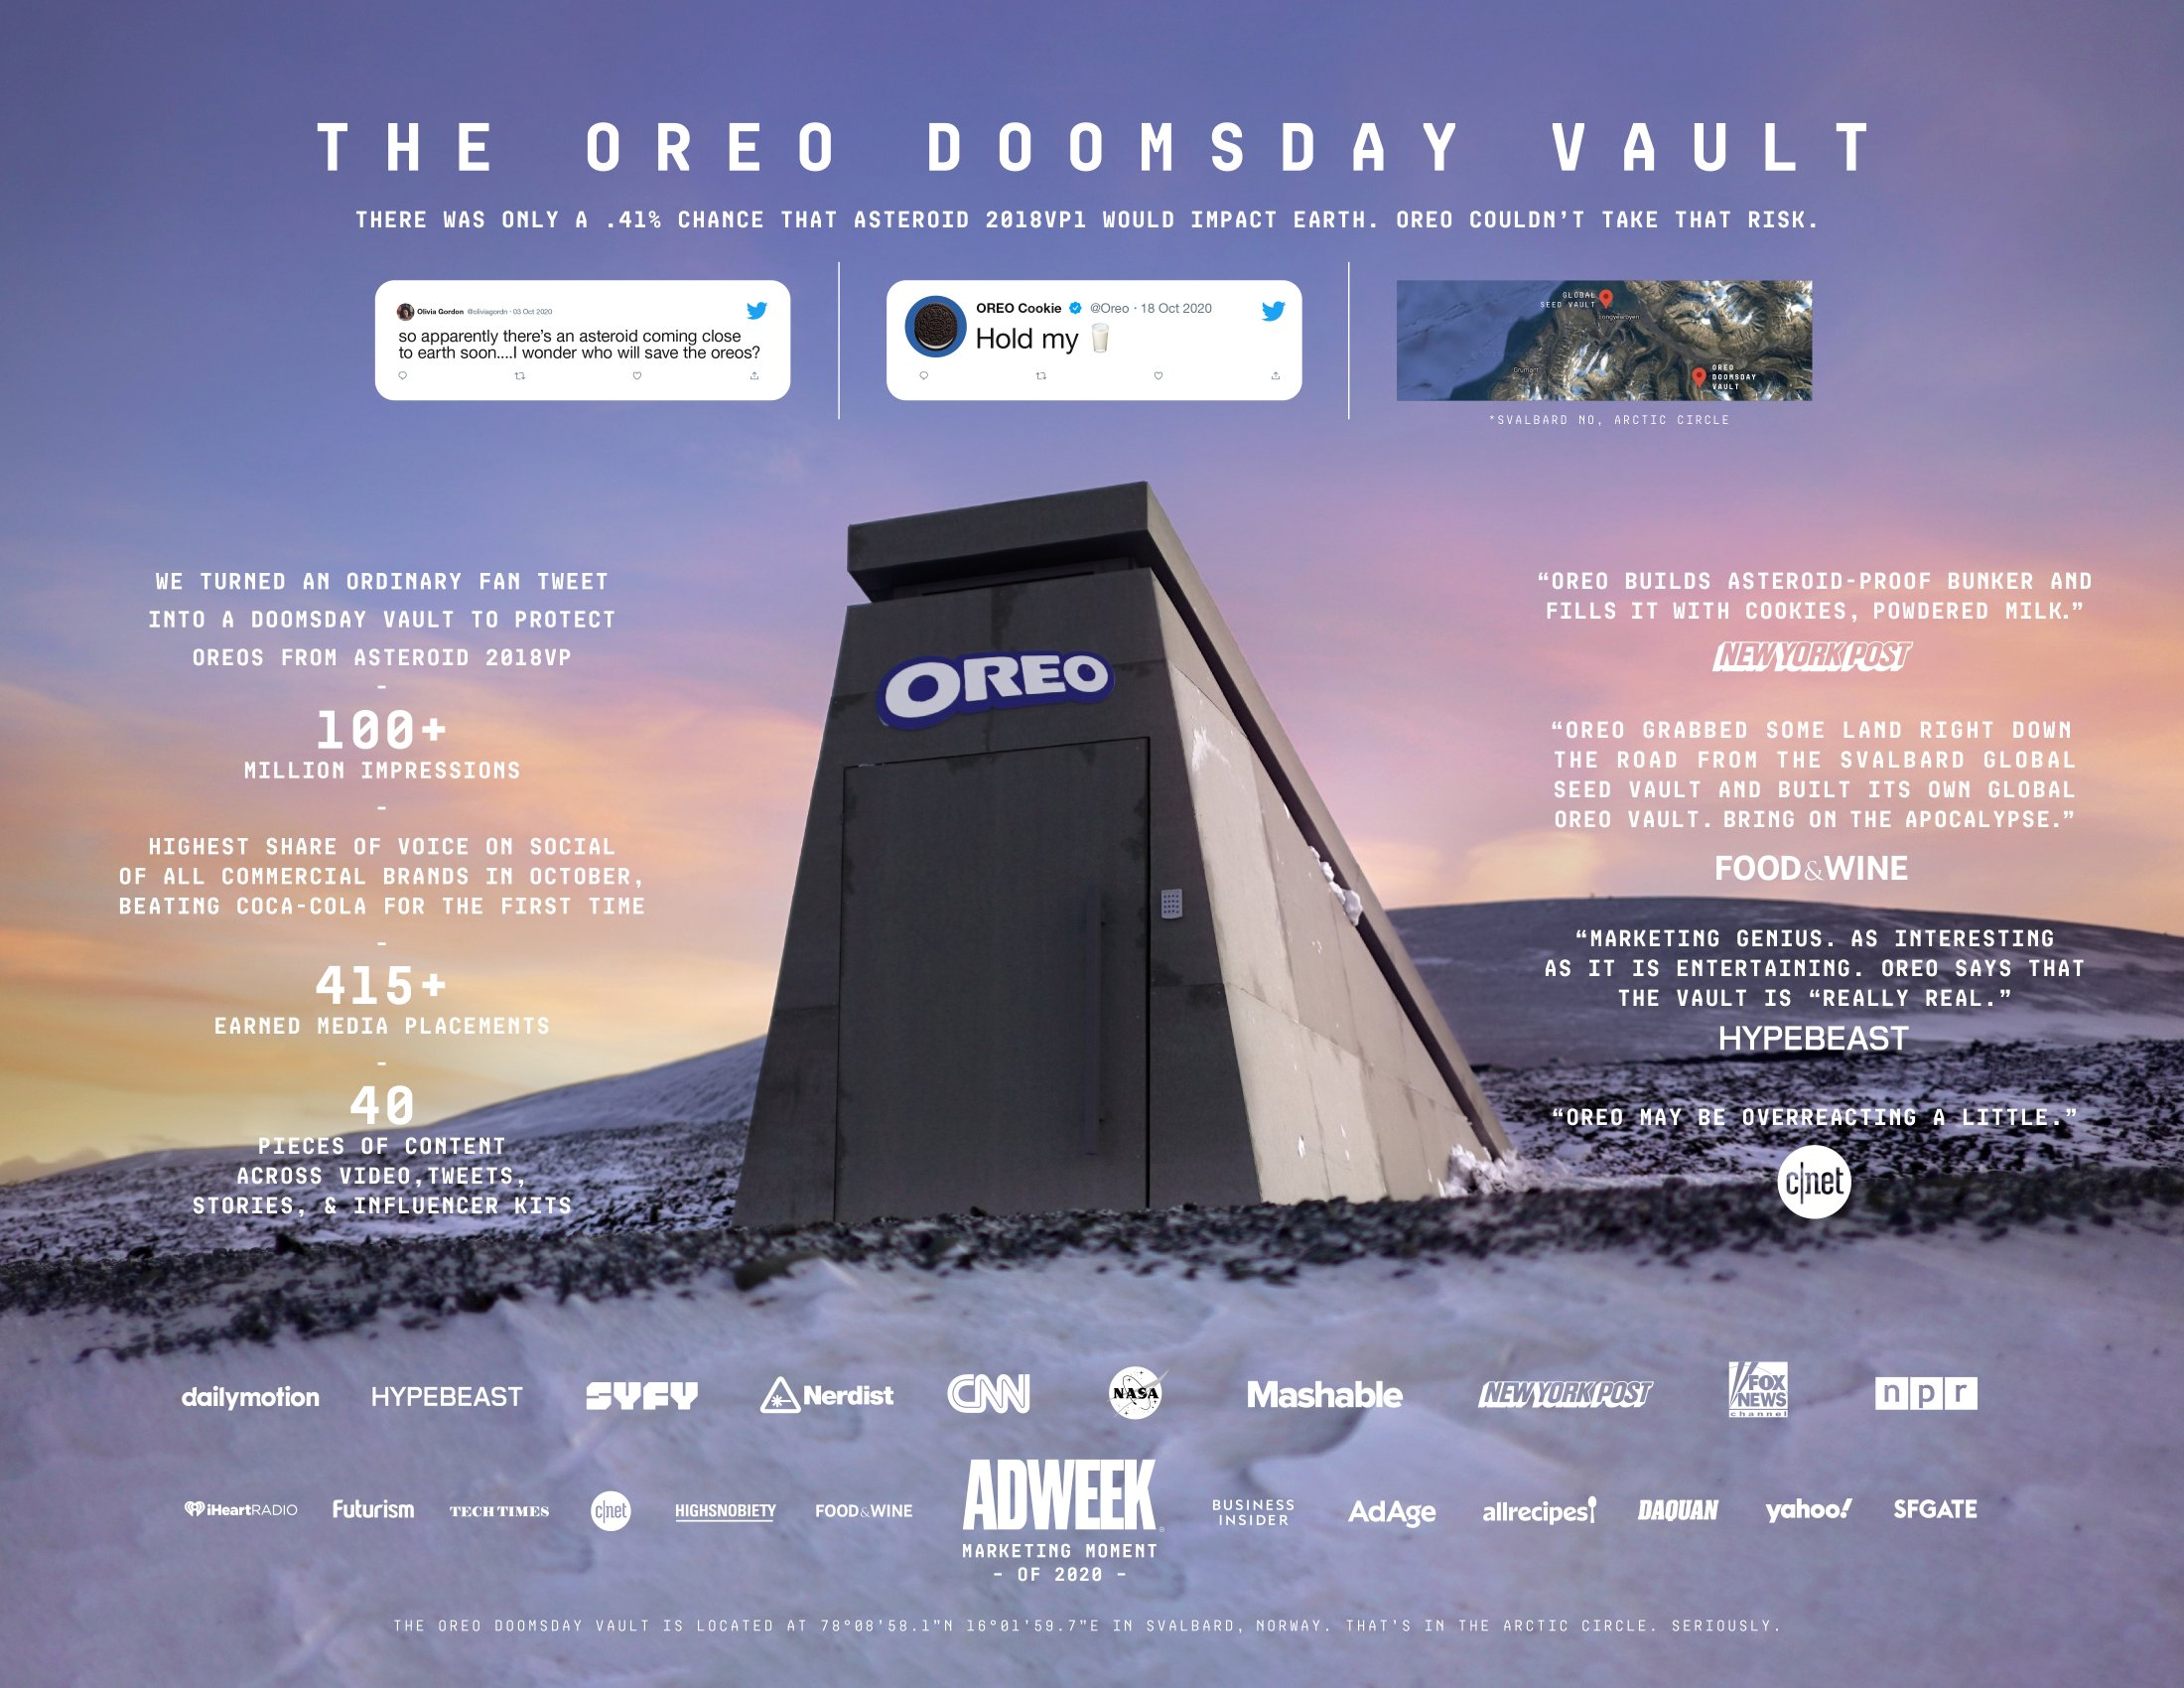 Thumbnail for The OREO Doomsday Vault